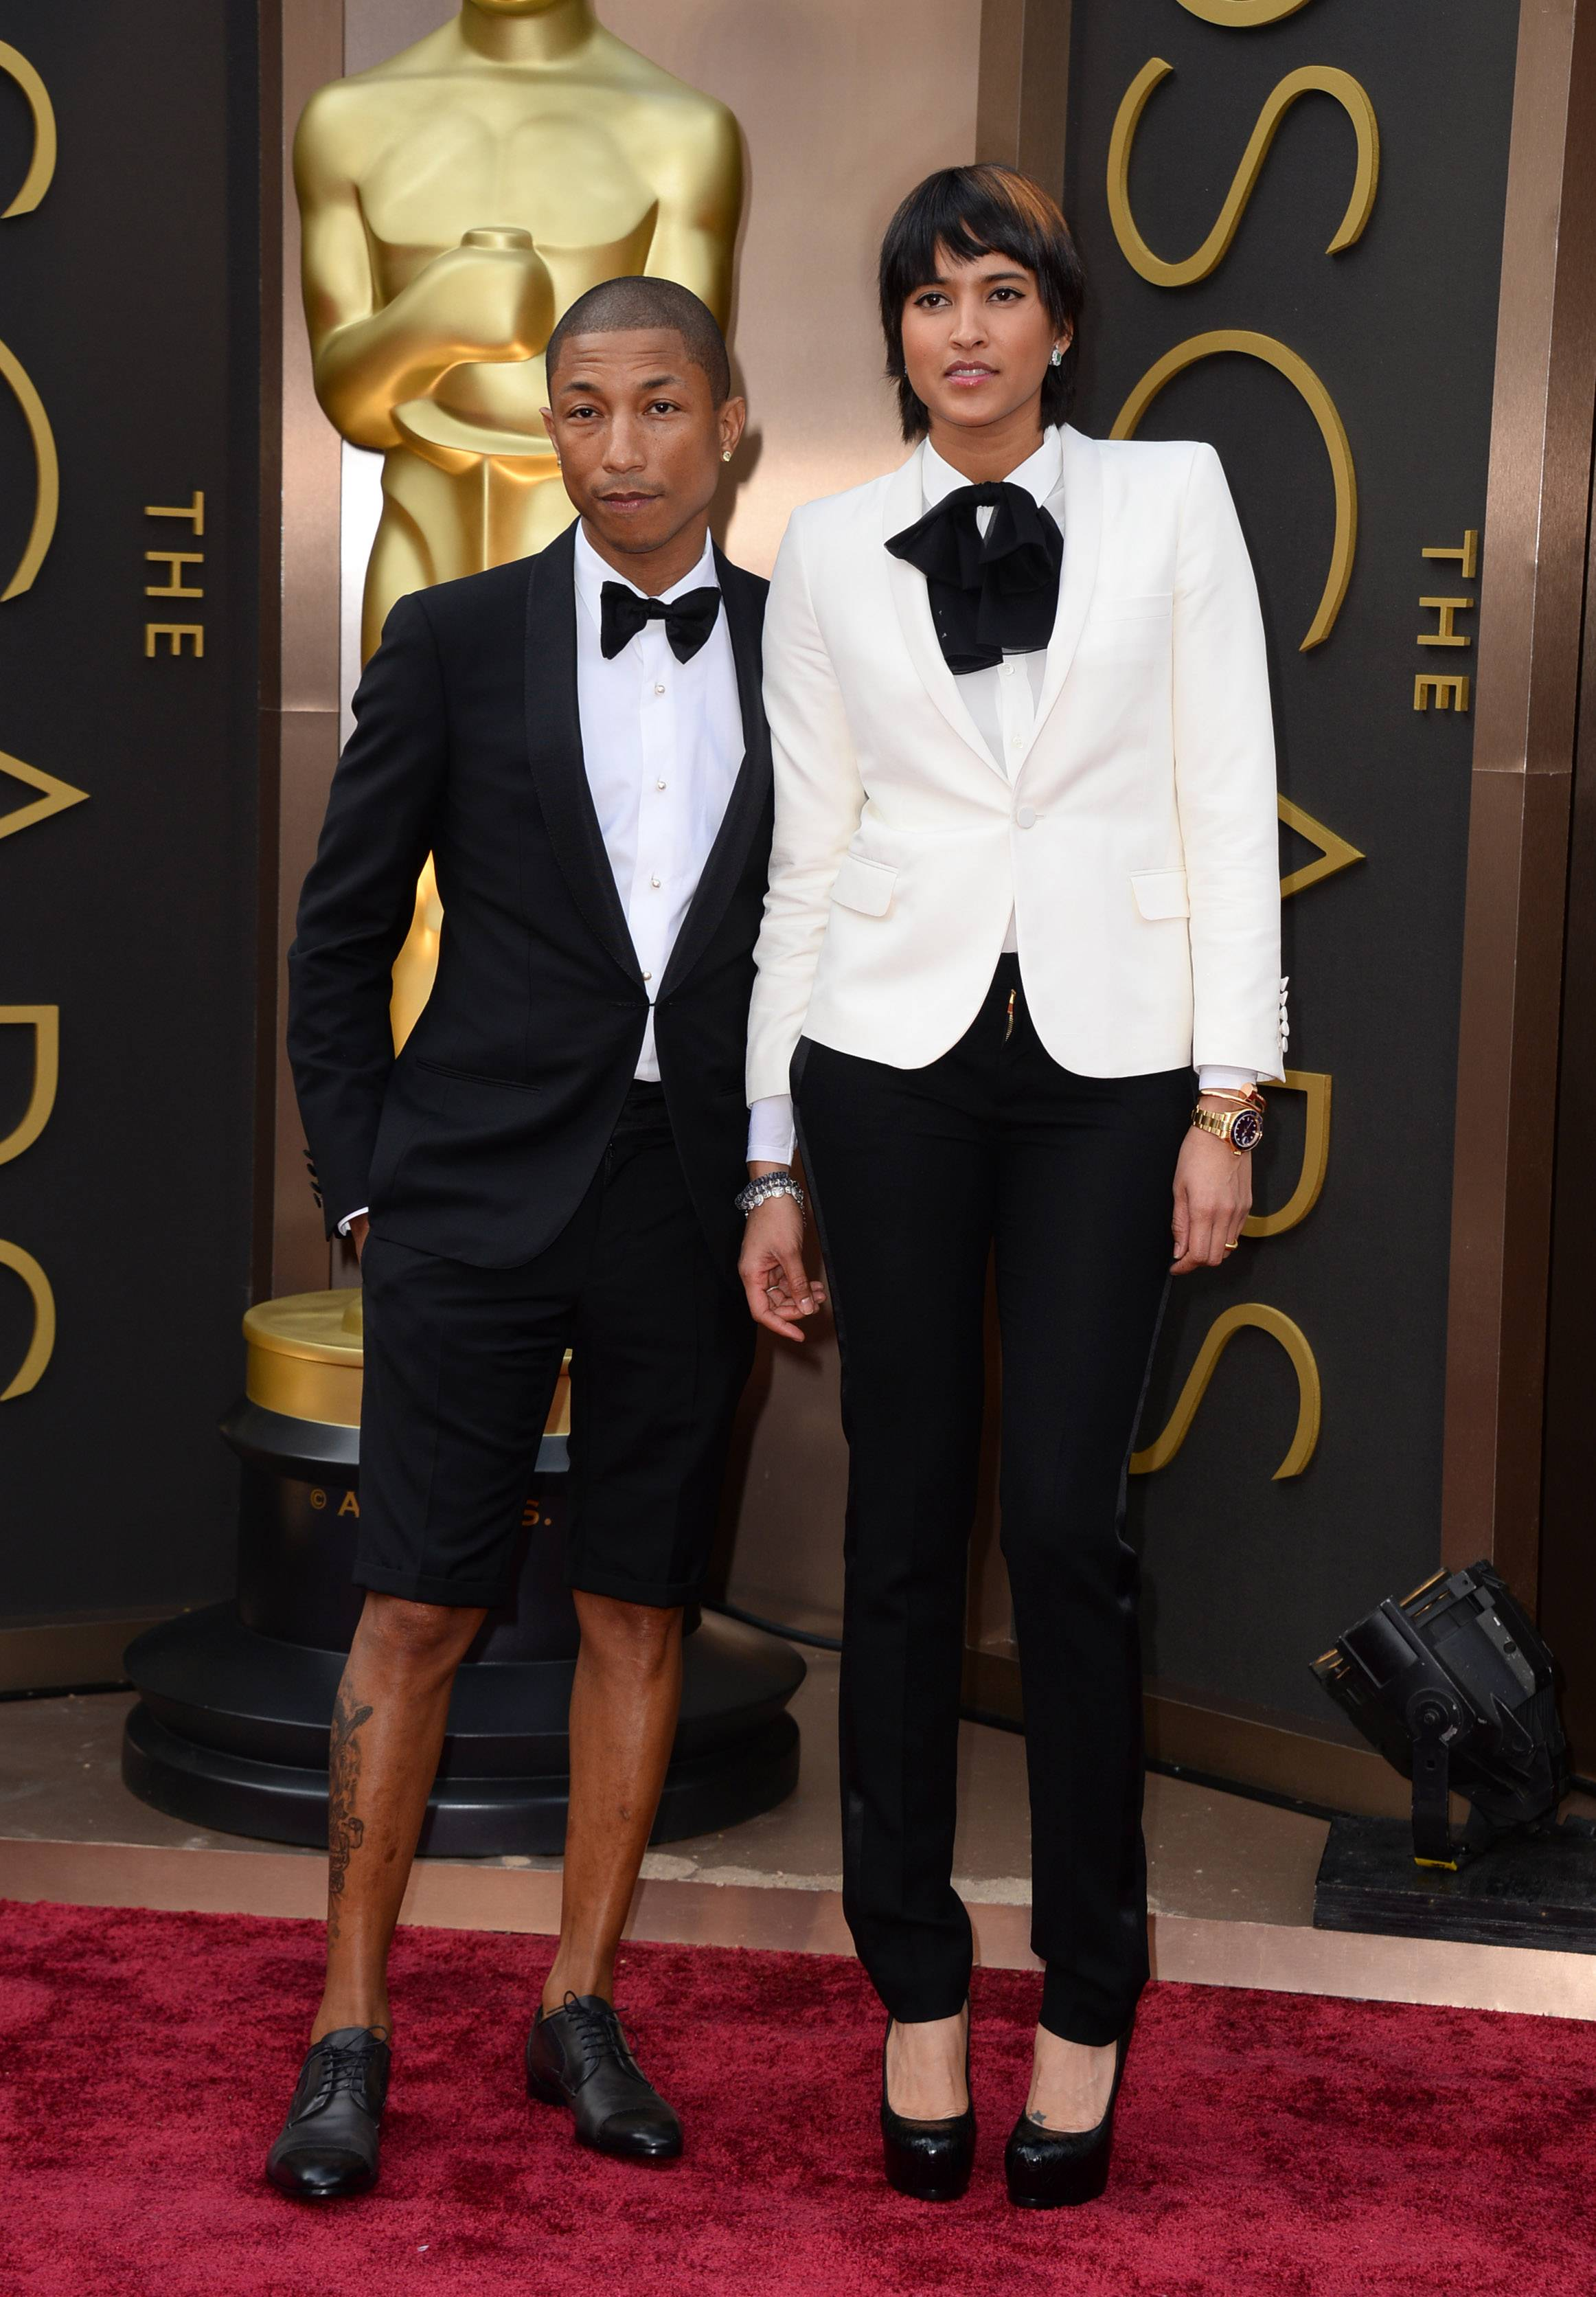 Well, it's not a hat! Pharrell Williams makes a fashion statement this time with shorts as he walks the red carpet with Helen Lasichanh at the Oscars on Sunday.